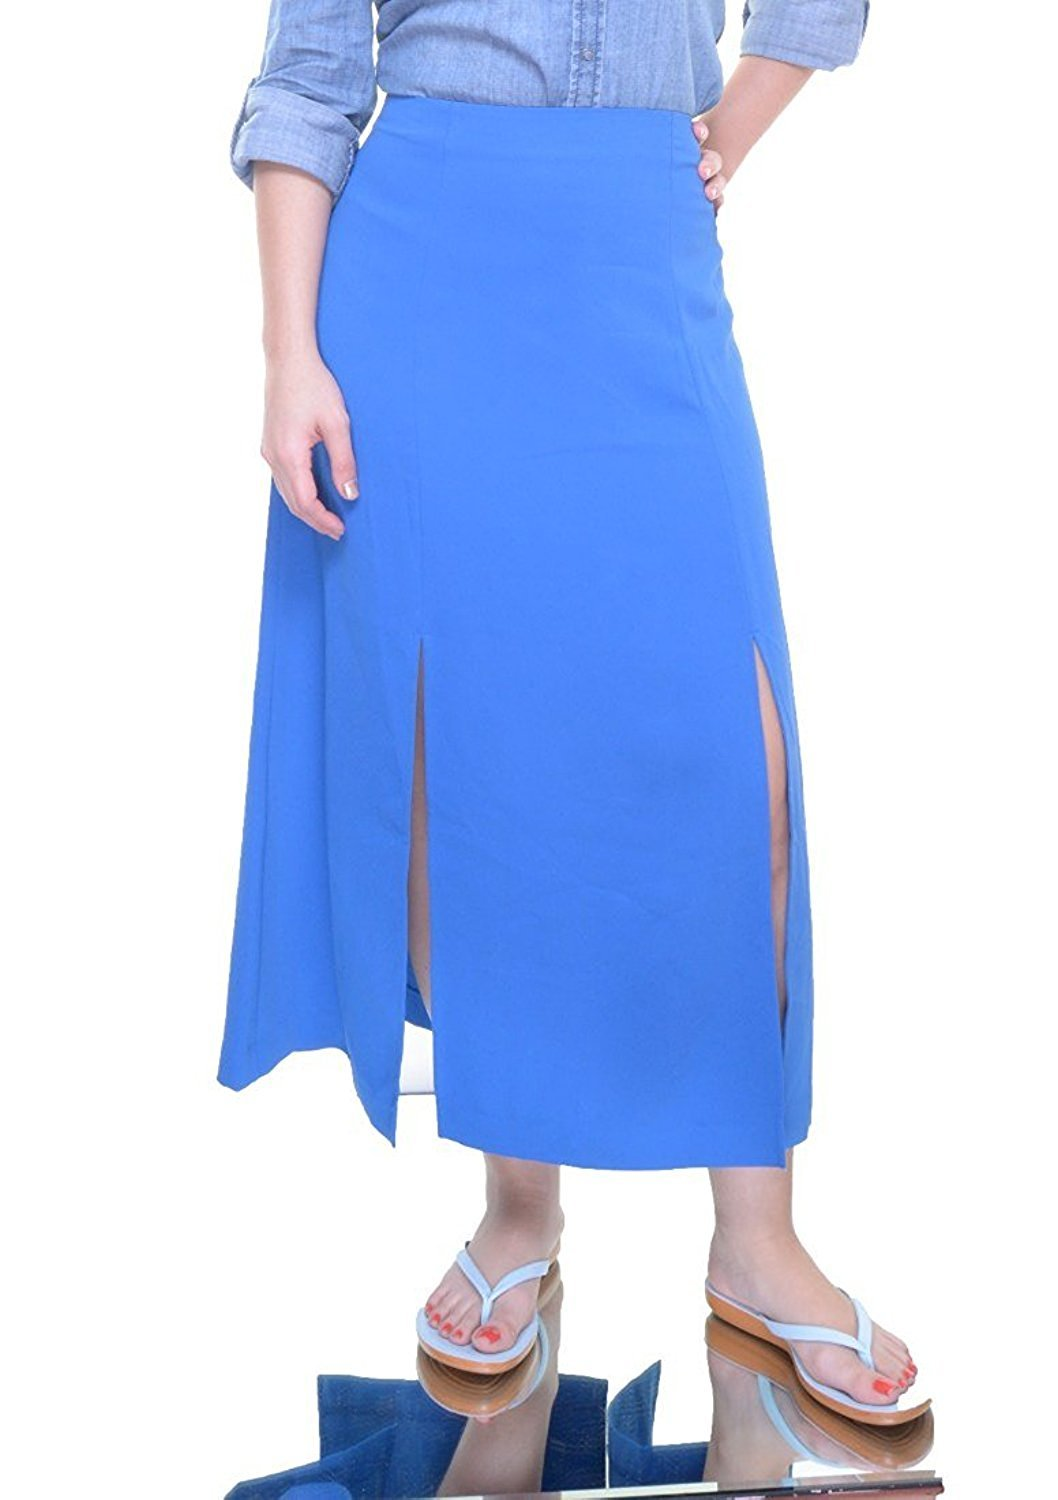 Lauren Ralph Lauren Midi Length Split Skirt, Atmosphere Blue (14)